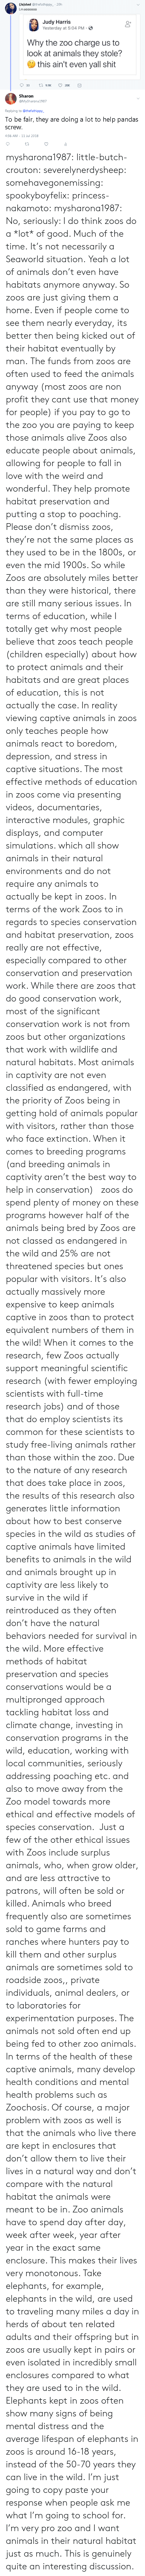 Tigers: (Ja)ded @thefathippy 20h  maooo000  Judy Harris  Yesterday at 5:04 PM.  0+  Why the zoo charge us to  look at animals they stole?  this ain't even yall shit  Sharon  @MySharona1987  Replying to @thefathippy  To be fair, they are doing a lot to help pandas  screw.  4:56 AM- 11 Jul 2018 mysharona1987:  little-butch-crouton: severelynerdysheep:  somehavegonemissing:  spookyboyfelix:  princess-nakamoto:   mysharona1987:   No, seriously: I do think zoos do a *lot* of good. Much of the time. It's not necessarily a Seaworld situation.   Yeah a lot of animals don't even have habitats anymore anyway. So zoos are just giving them a home. Even if people come to see them nearly everyday, its better then being kicked out of their habitat eventually by man.   The funds from zoos are often used to feed the animals anyway (most zoos are non profit they cant use that money for people) if you pay to go to the zoo you are paying to keep those animals alive  Zoos also educate people about animals, allowing for people to fall in love with the weird and wonderful.  They help promote habitat preservation and putting a stop to poaching. Please don't dismiss zoos, they're not the same places as they used to be in the 1800s, or even the mid 1900s.   So while Zoos are absolutely miles better than they were historical, there are still many serious issues. In terms of education, while I totally get why most people believe that zoos teach people (children especially) about how to protect animals and their habitats and are great places of education, this is not actually the case. In reality viewing captive animals in zoos only teaches people how animals react to boredom, depression, and stress in captive situations. The most effective methods of education in zoos come via presenting videos, documentaries, interactive modules, graphic displays, and computer simulations. which all show animals in their natural environments and do not require any animals to actuallybe kept in zoos. In terms 